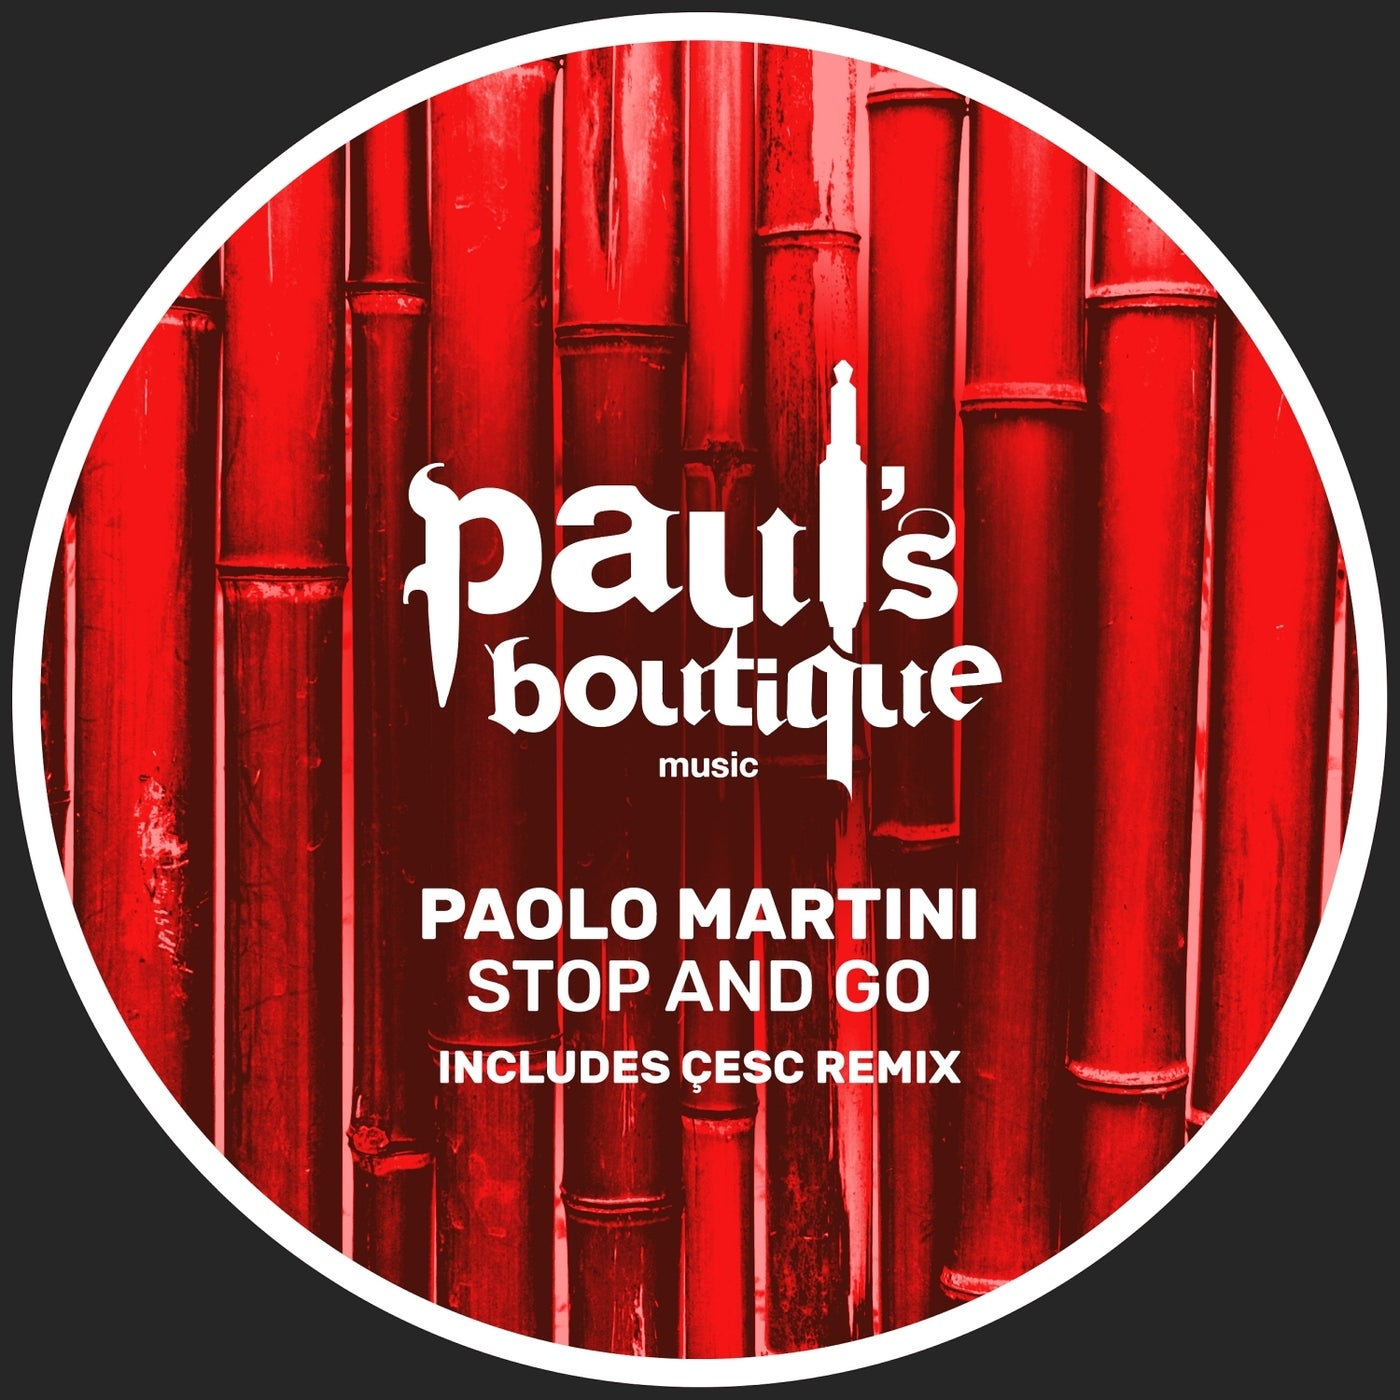 Paolo Martini - Stop and Go (2021)